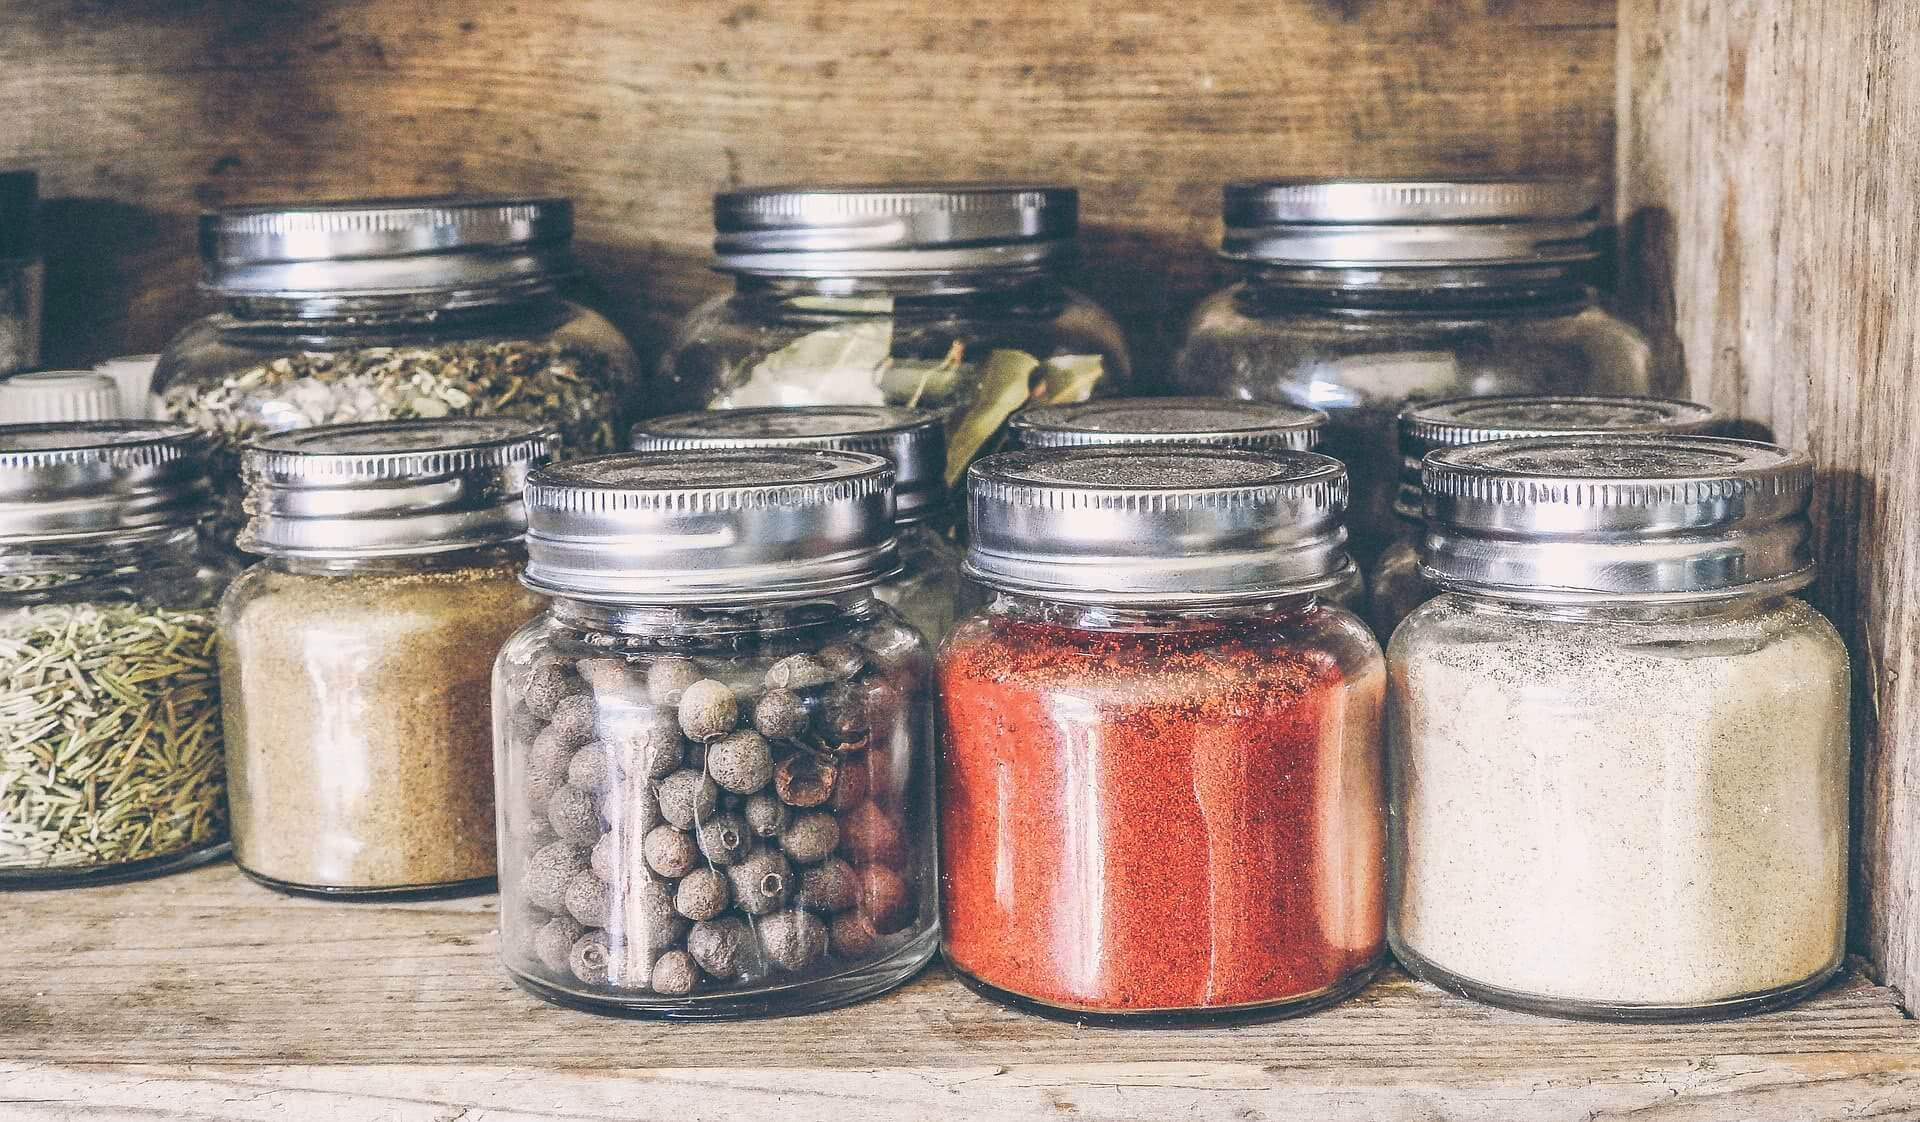 Group of spice jars